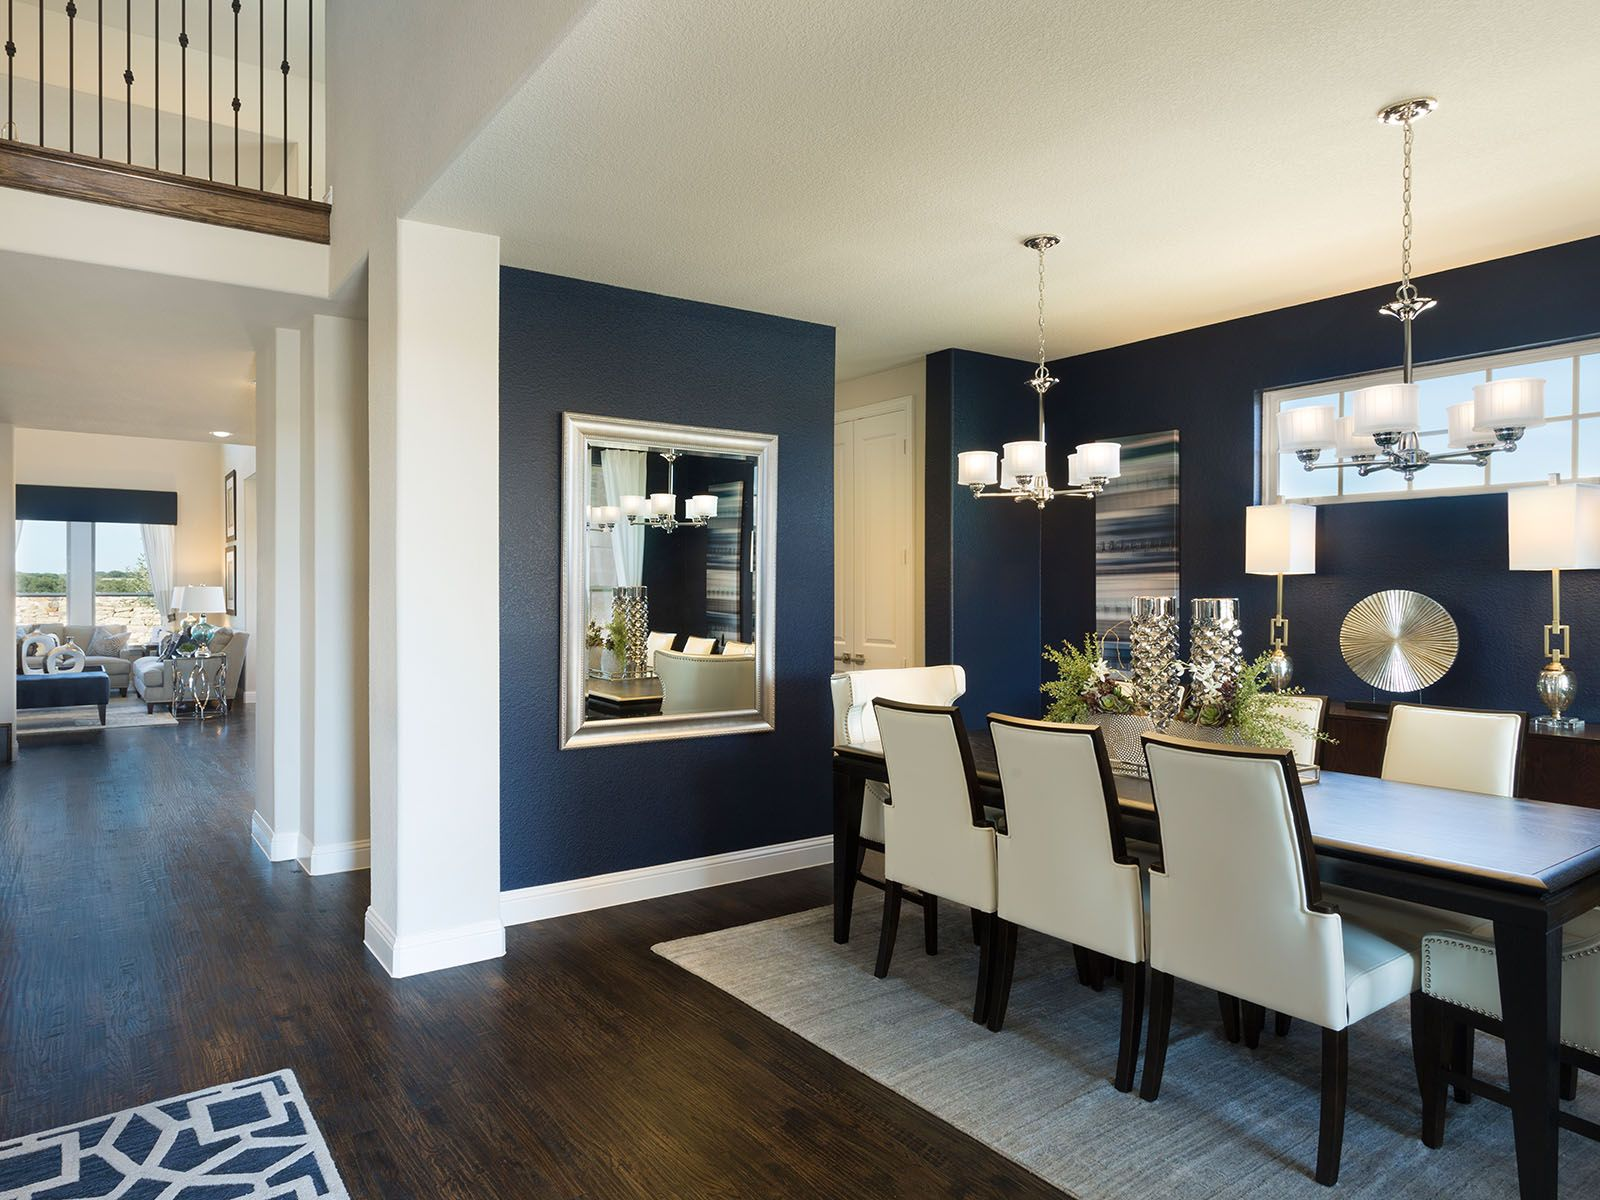 Meritage homes model home lantana beautiful navy walls for Photos of model homes